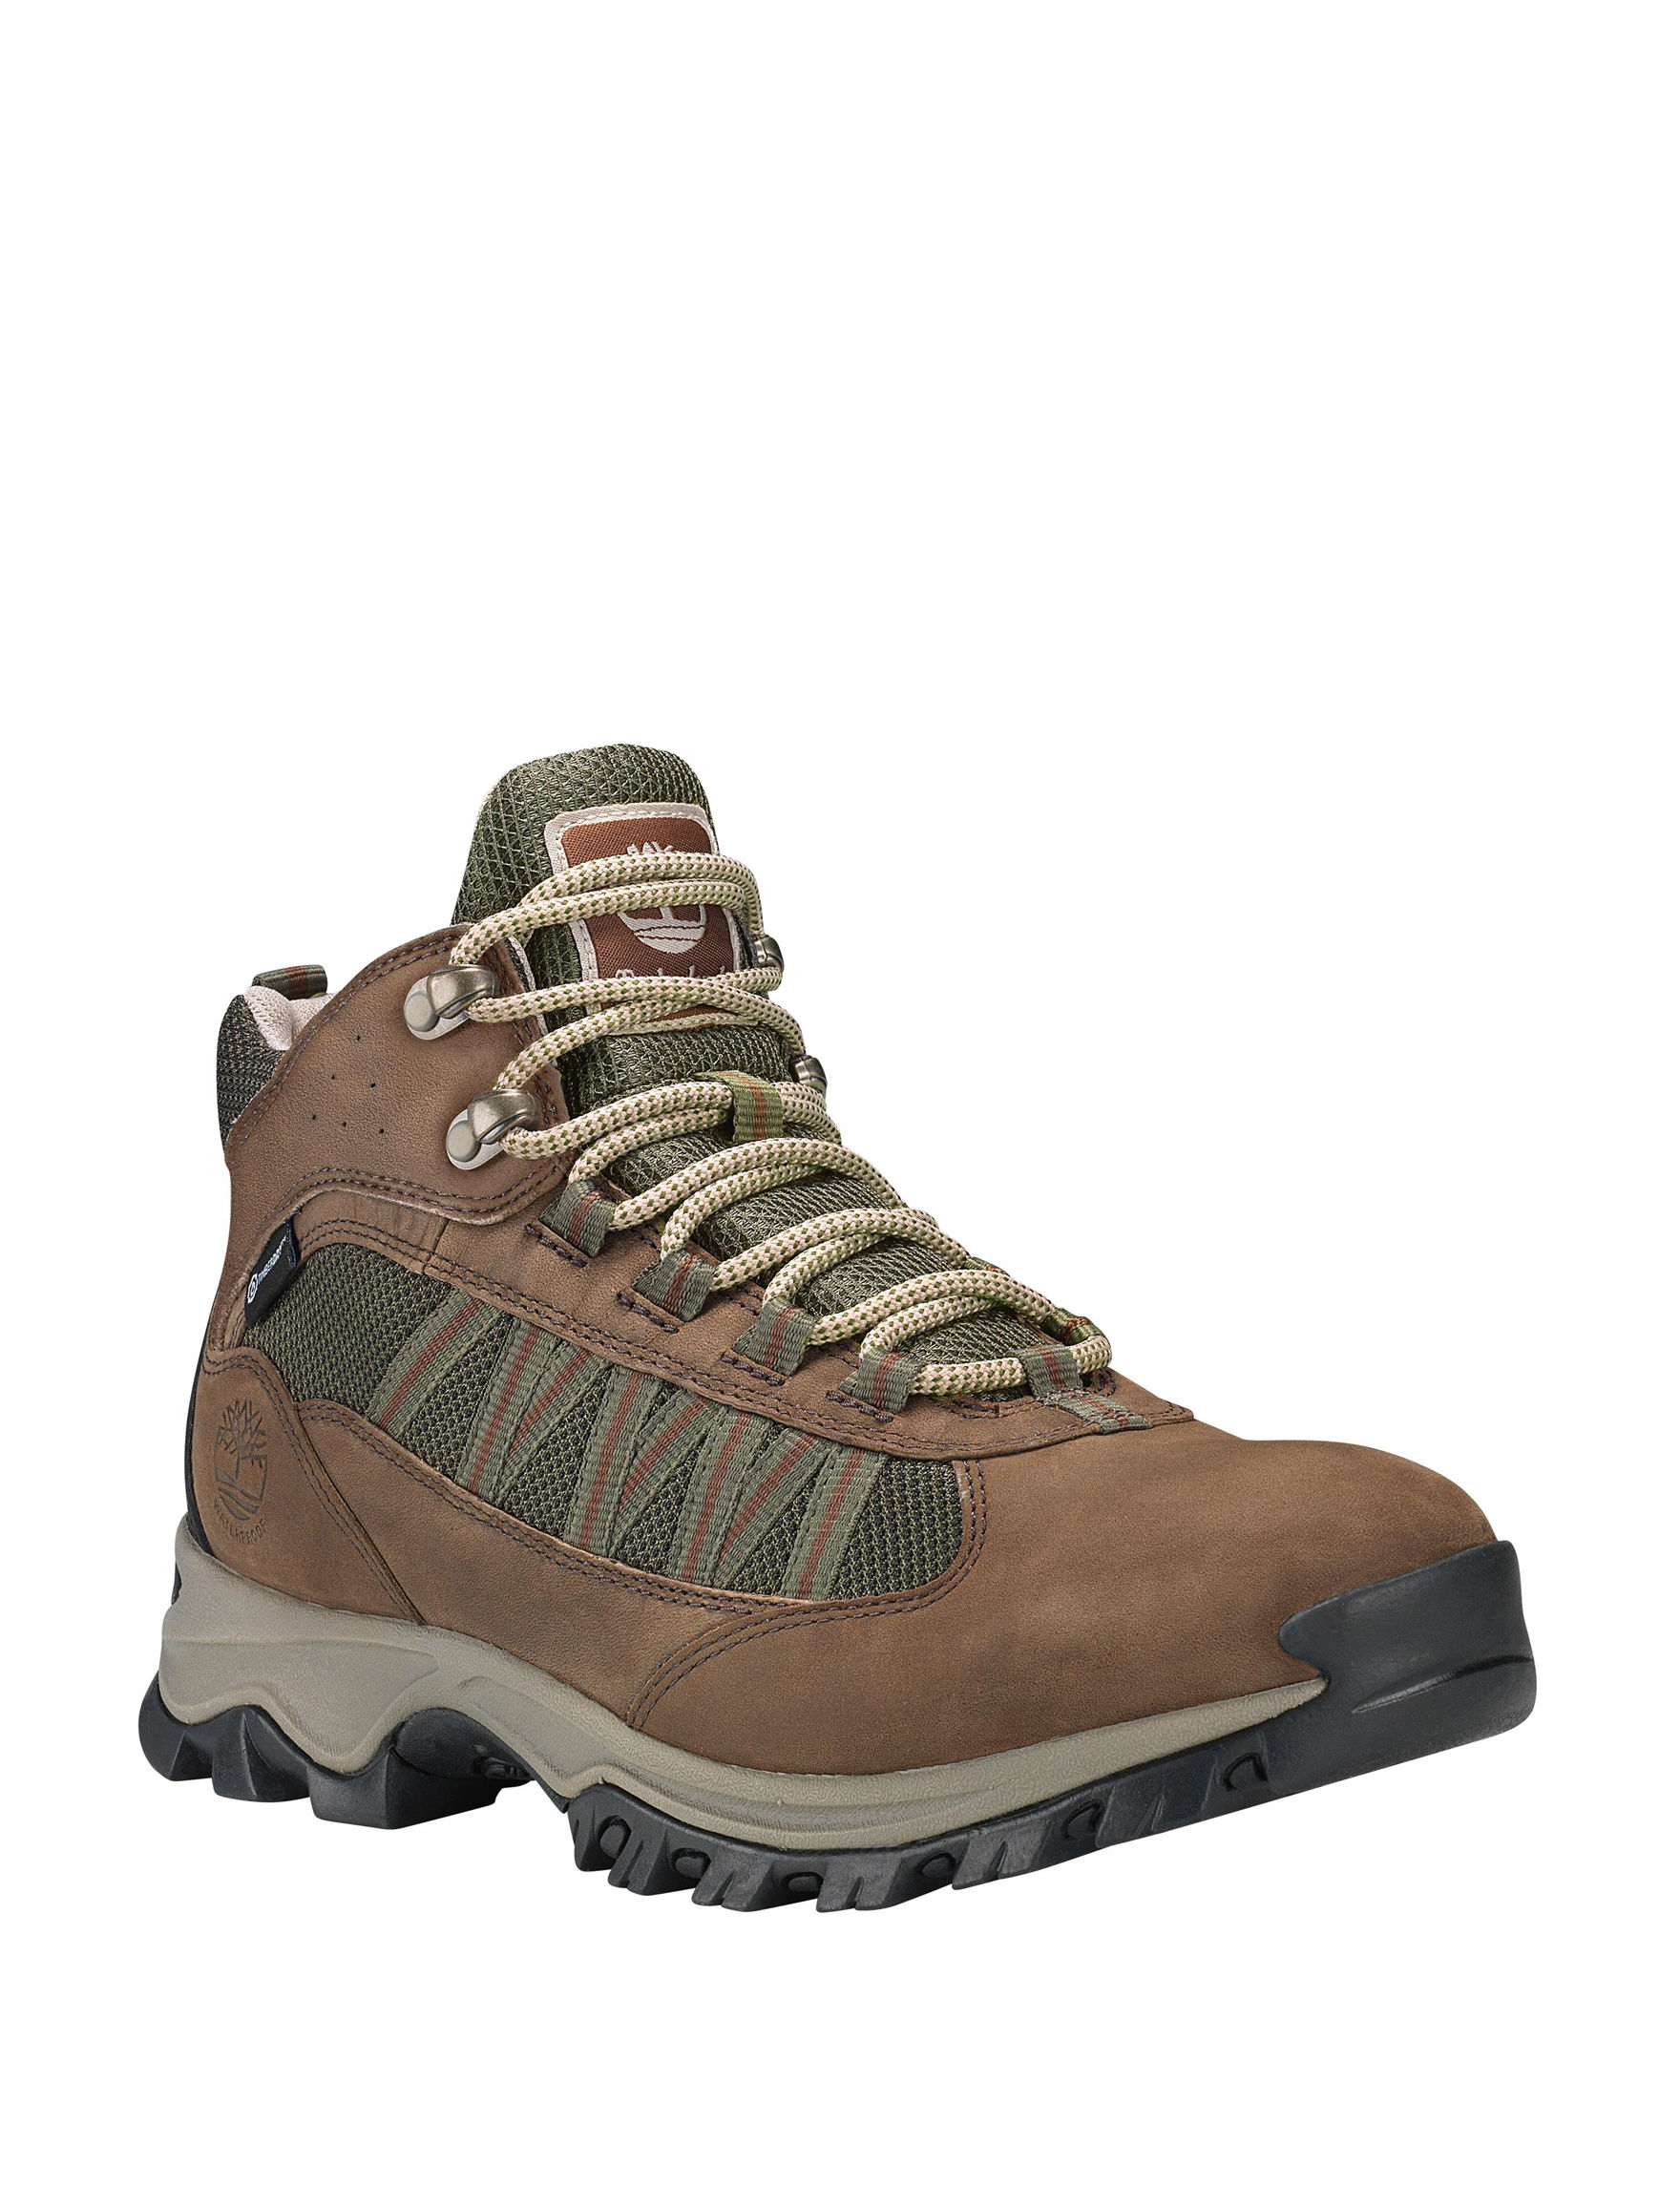 Timberland Brown Hiking Boots